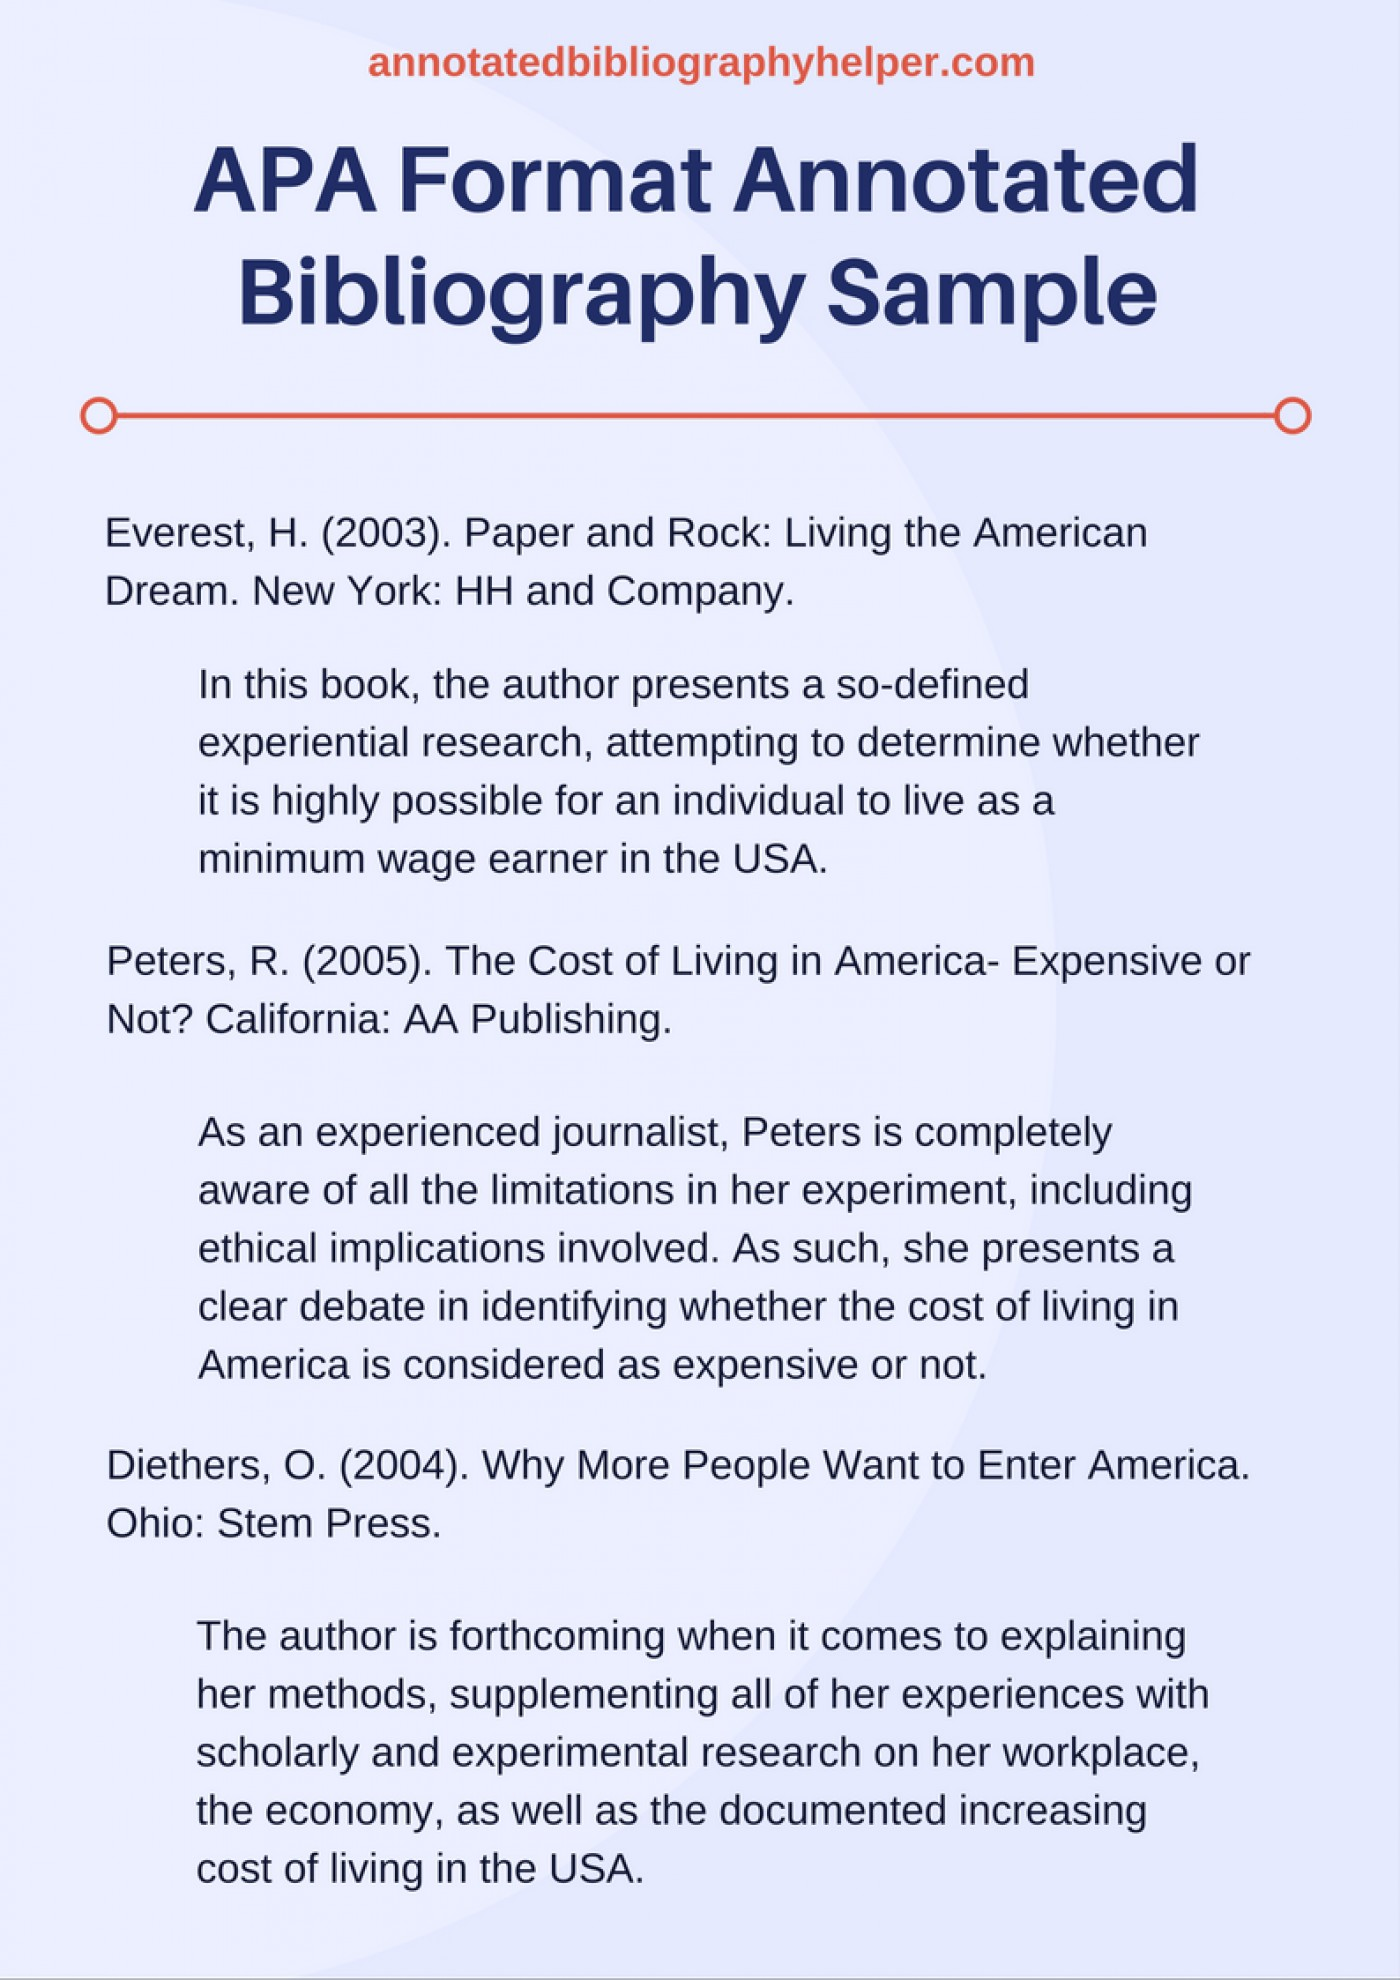 001 Bibliography Apa Format Research Paper Outstanding Reference Page References 1400